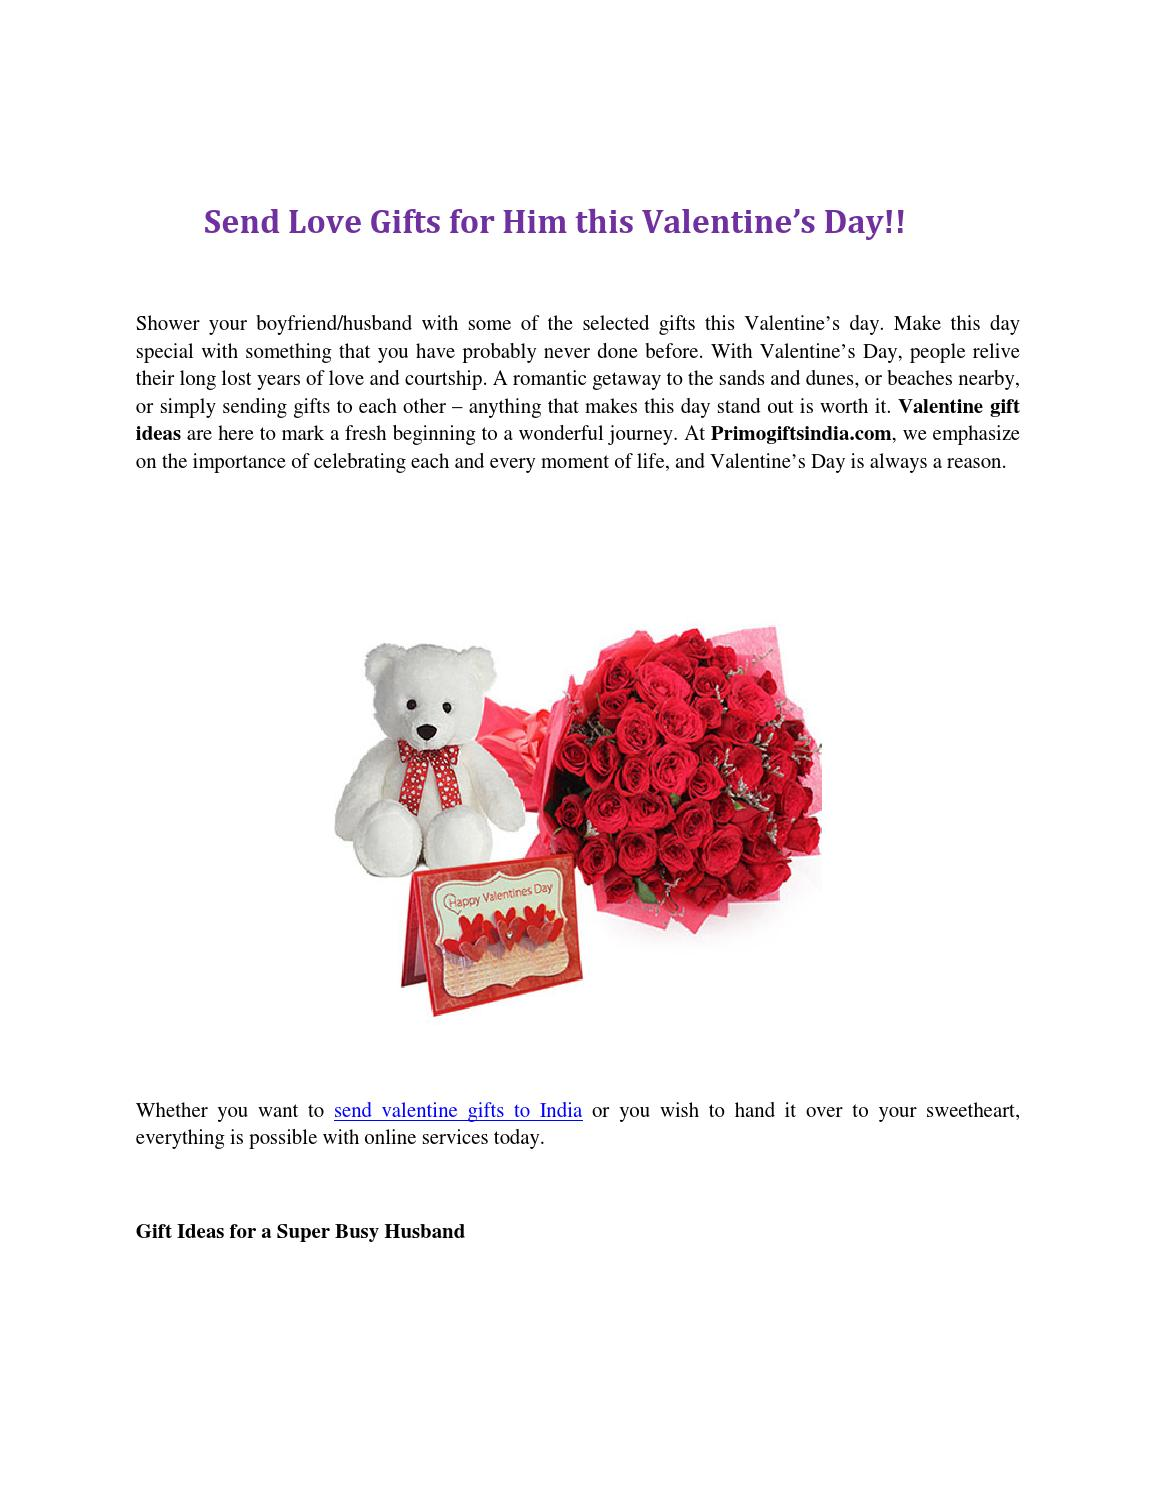 Send Love Gifts For Him This Valentine S Day By Primo Gifts India Issuu